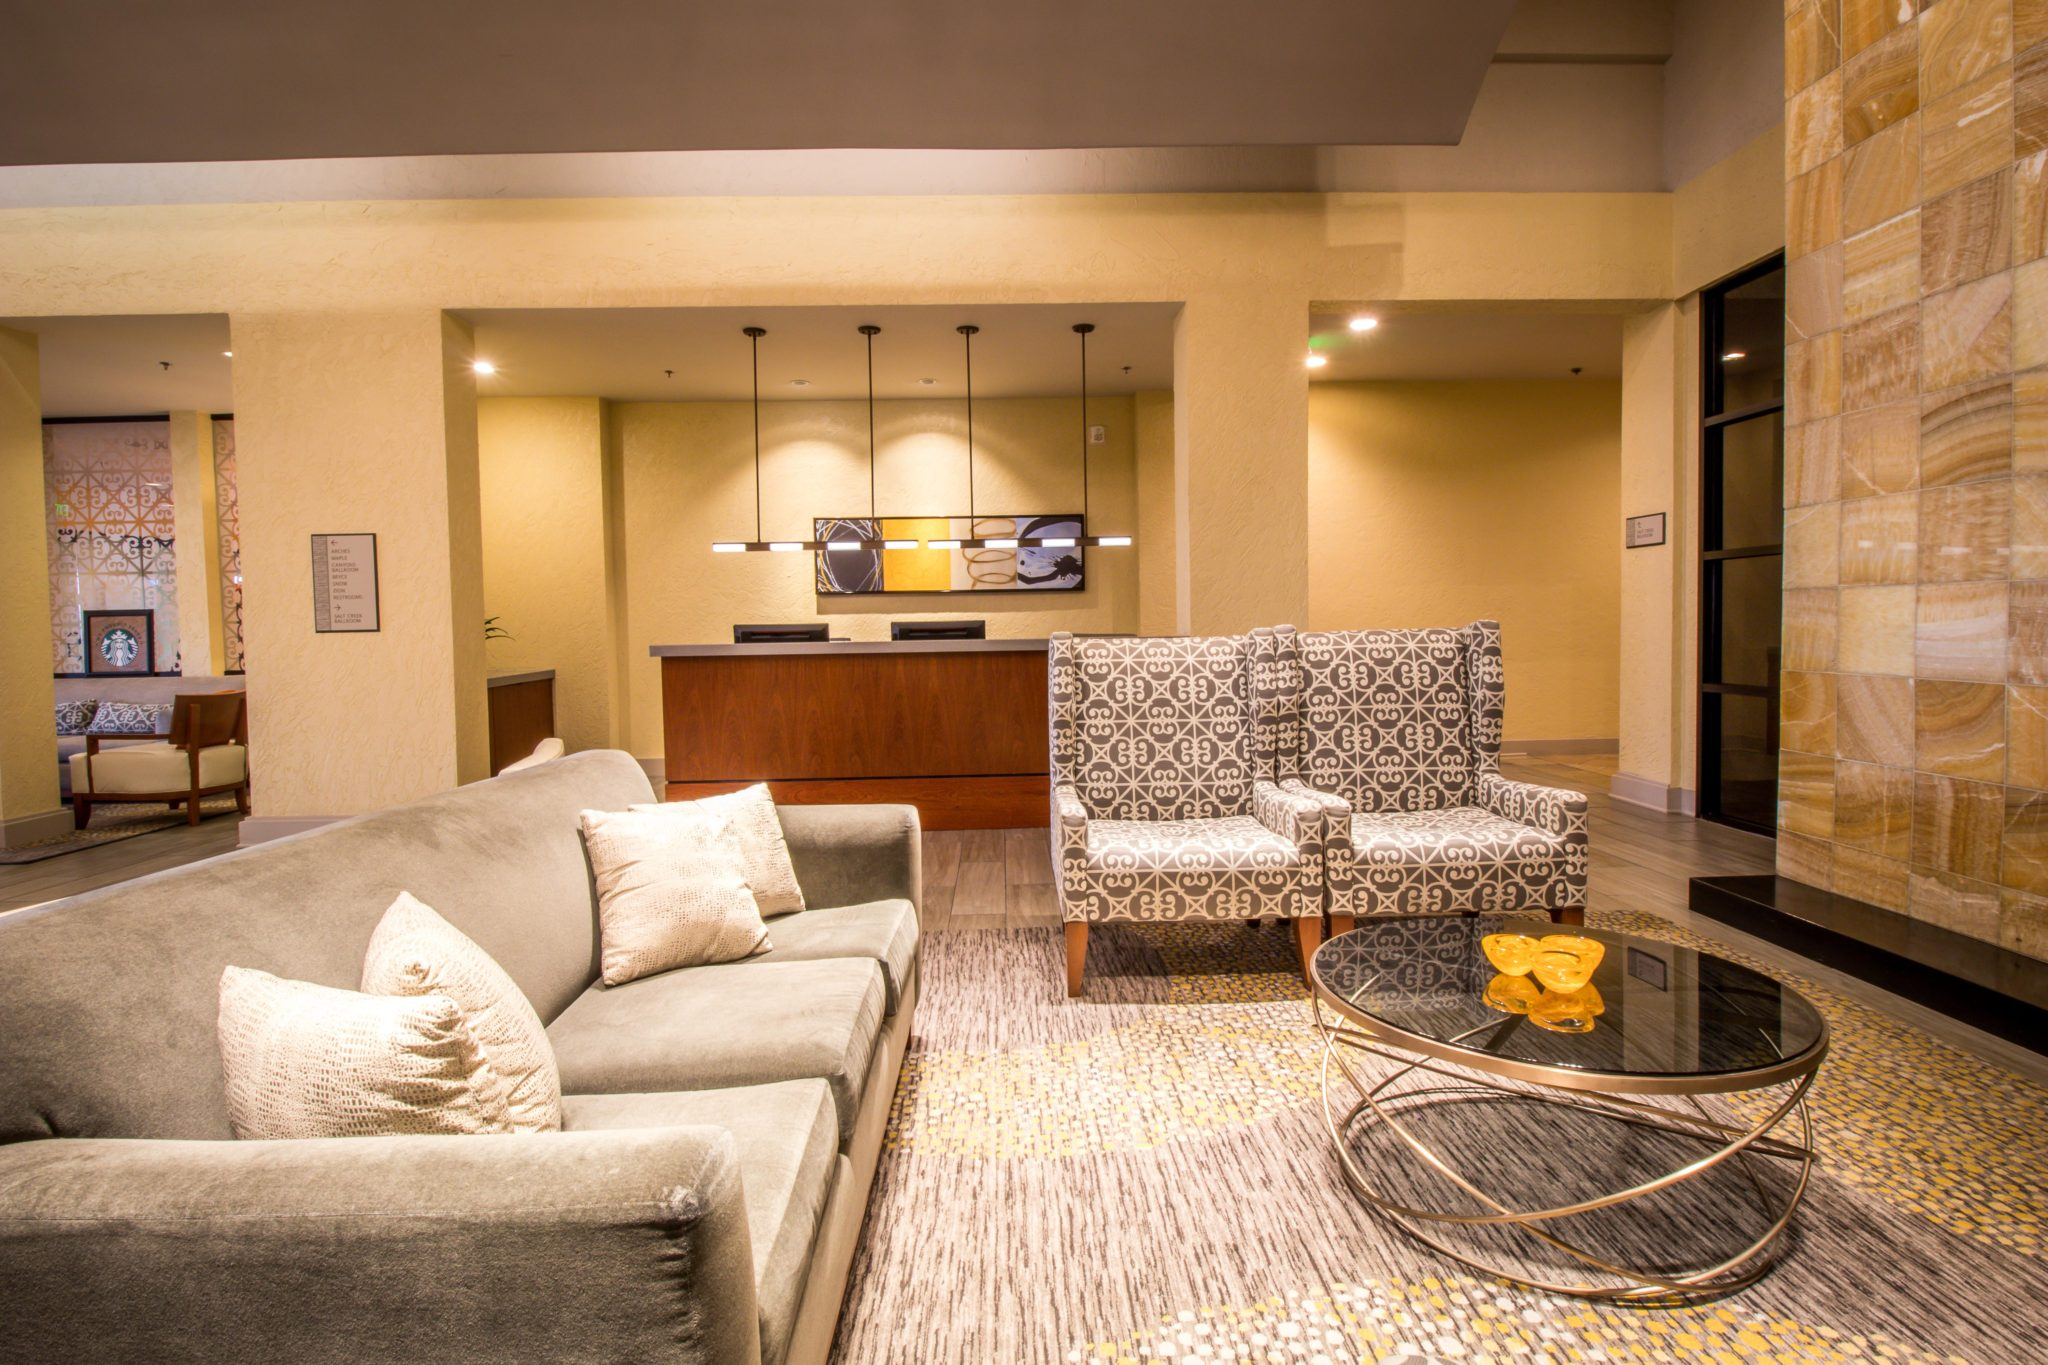 real estate interior Hilton hotel salt lake city Ryan hender photography